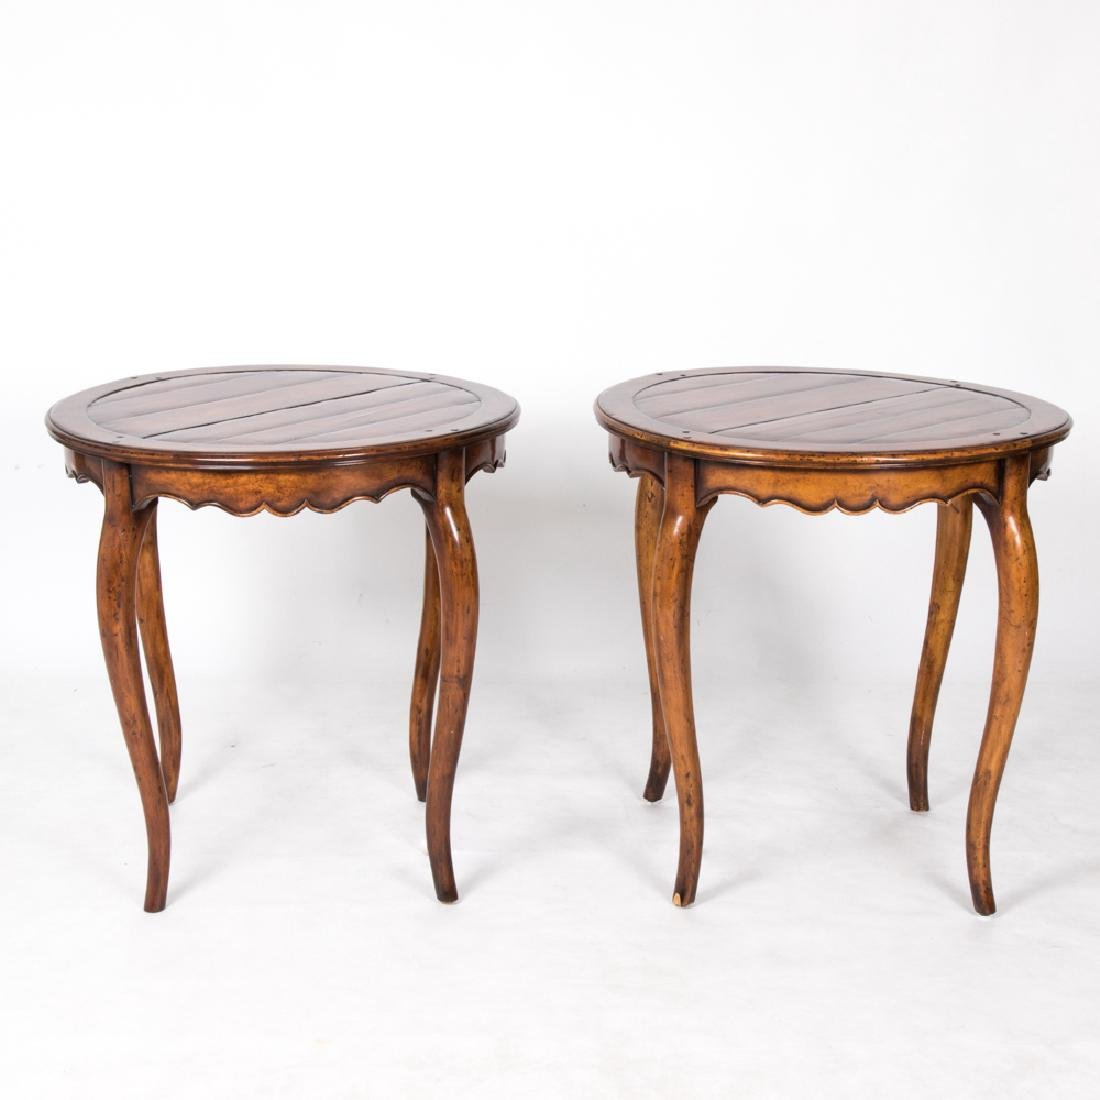 A Pair of French Provincial Style Stained Walnut